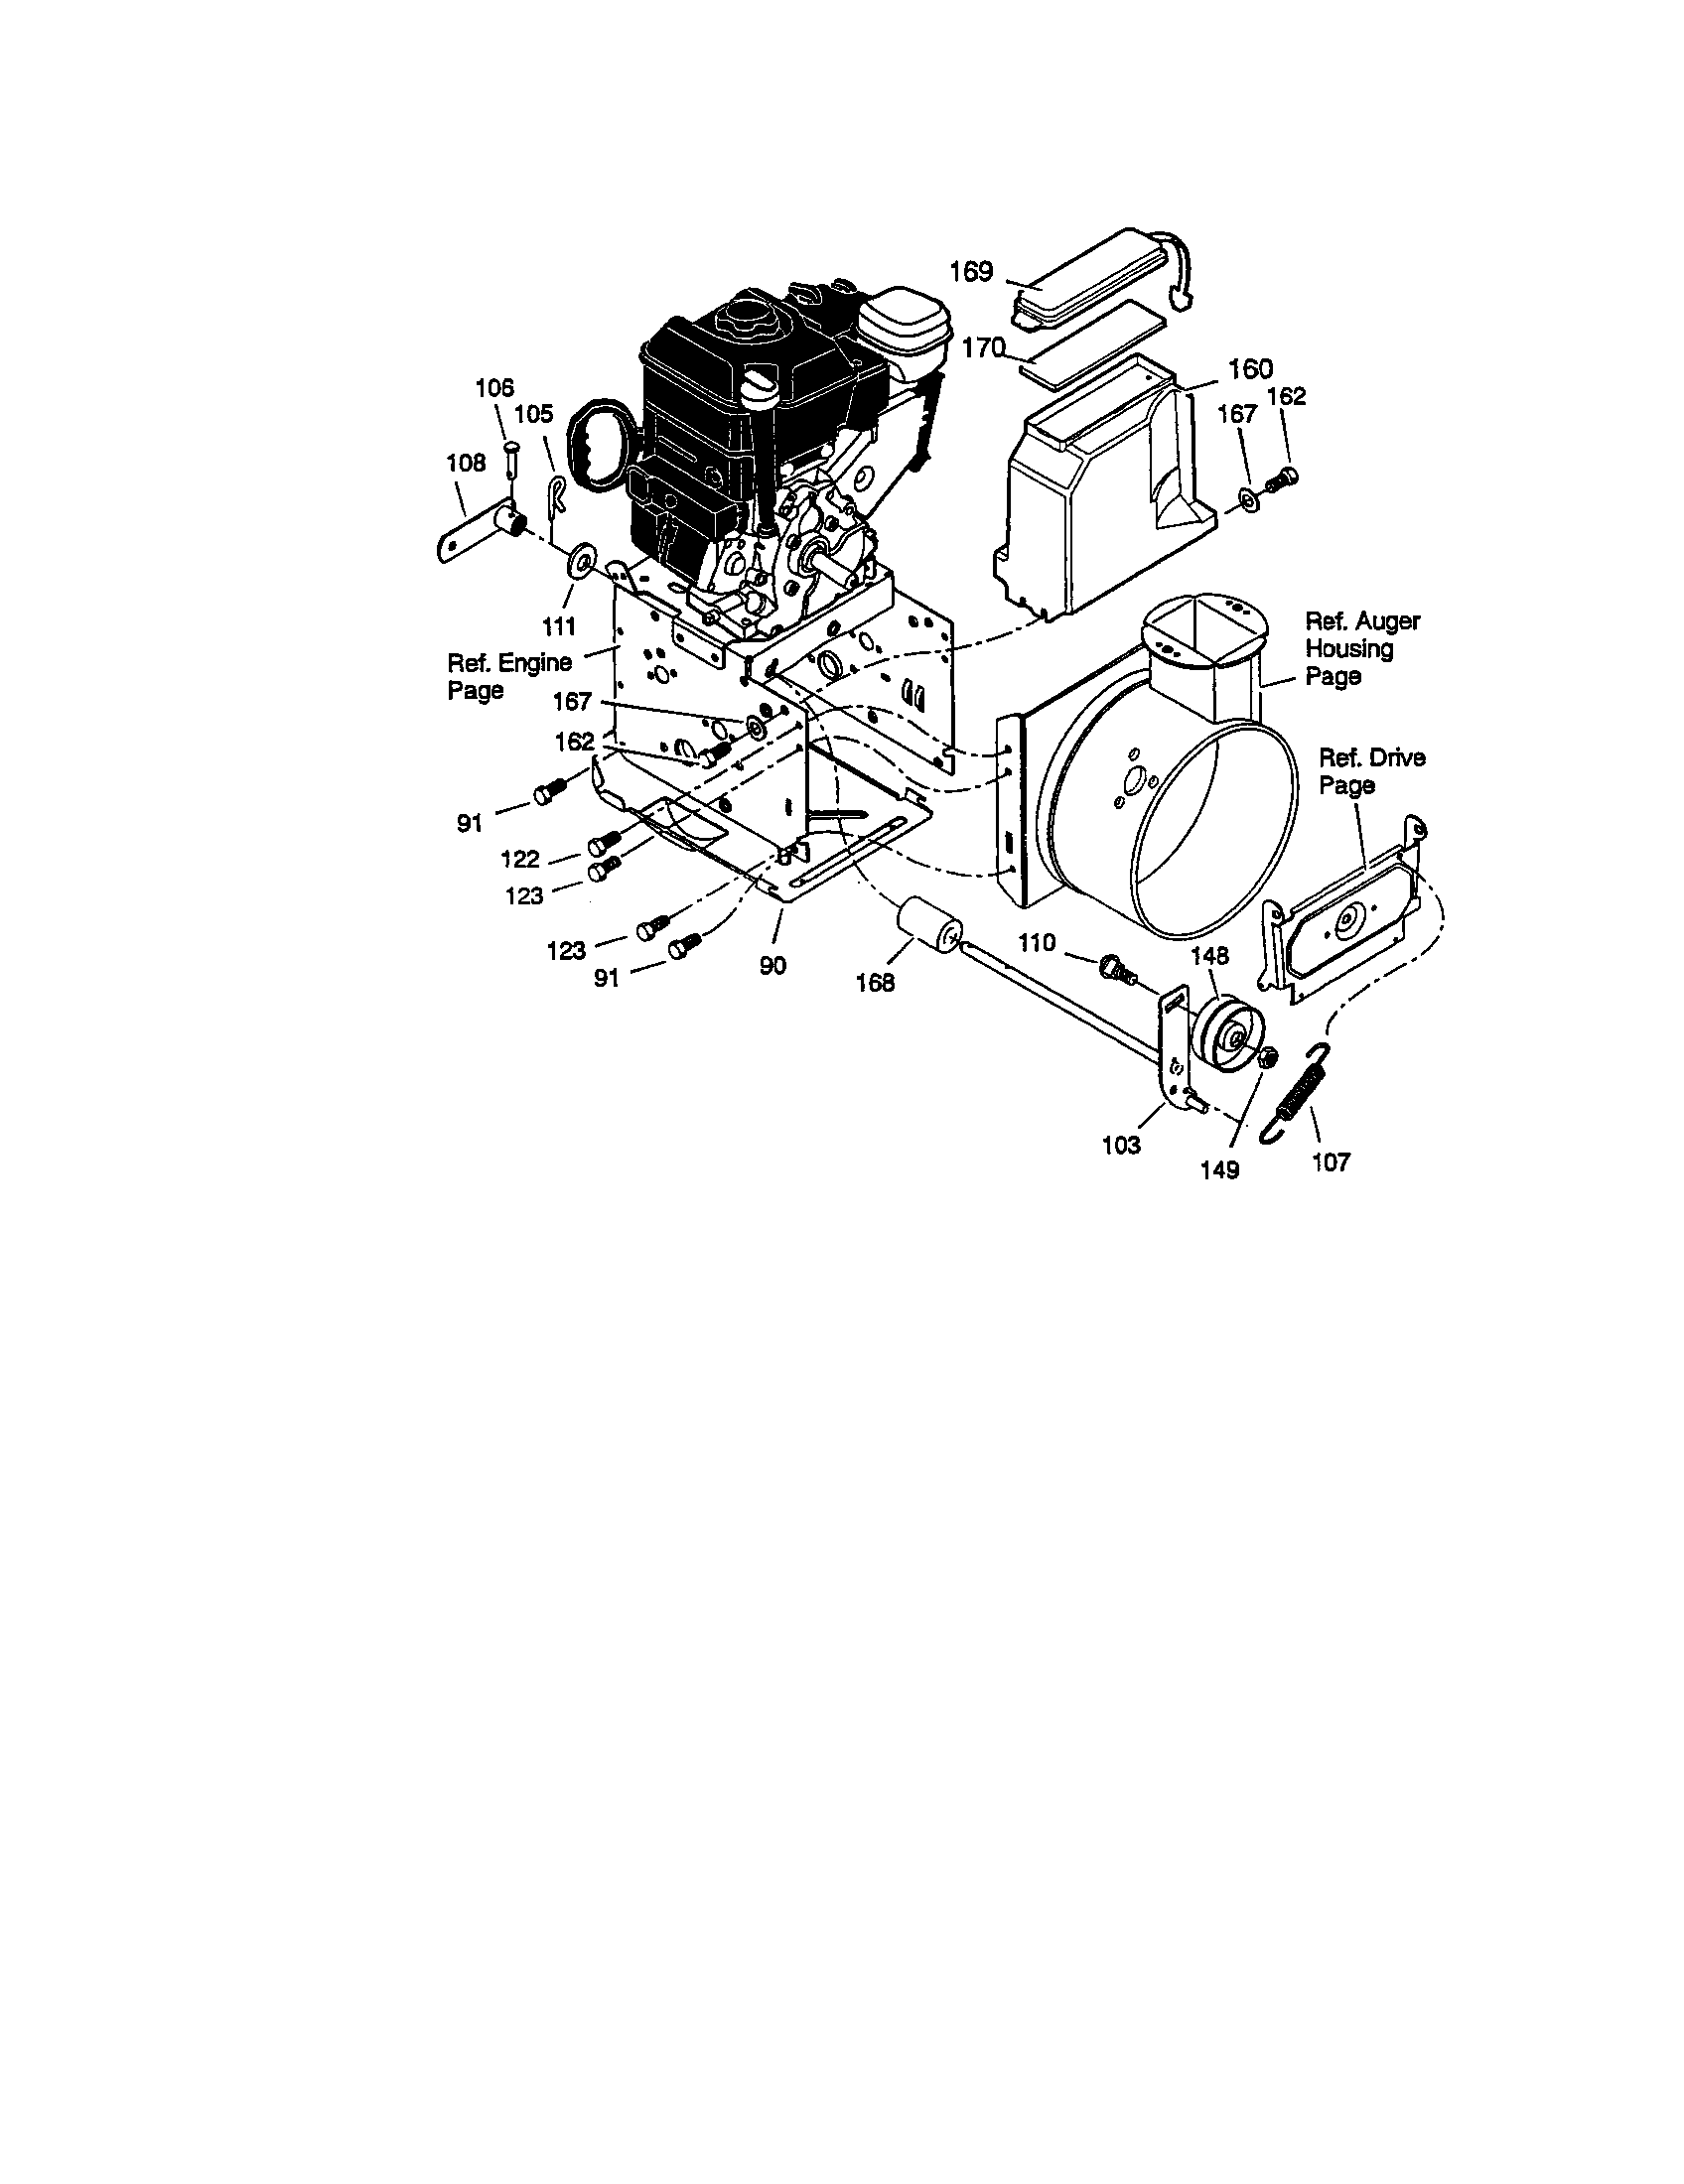 Briggs And Stratton Model 42a707 Wiring Diagram. Engine